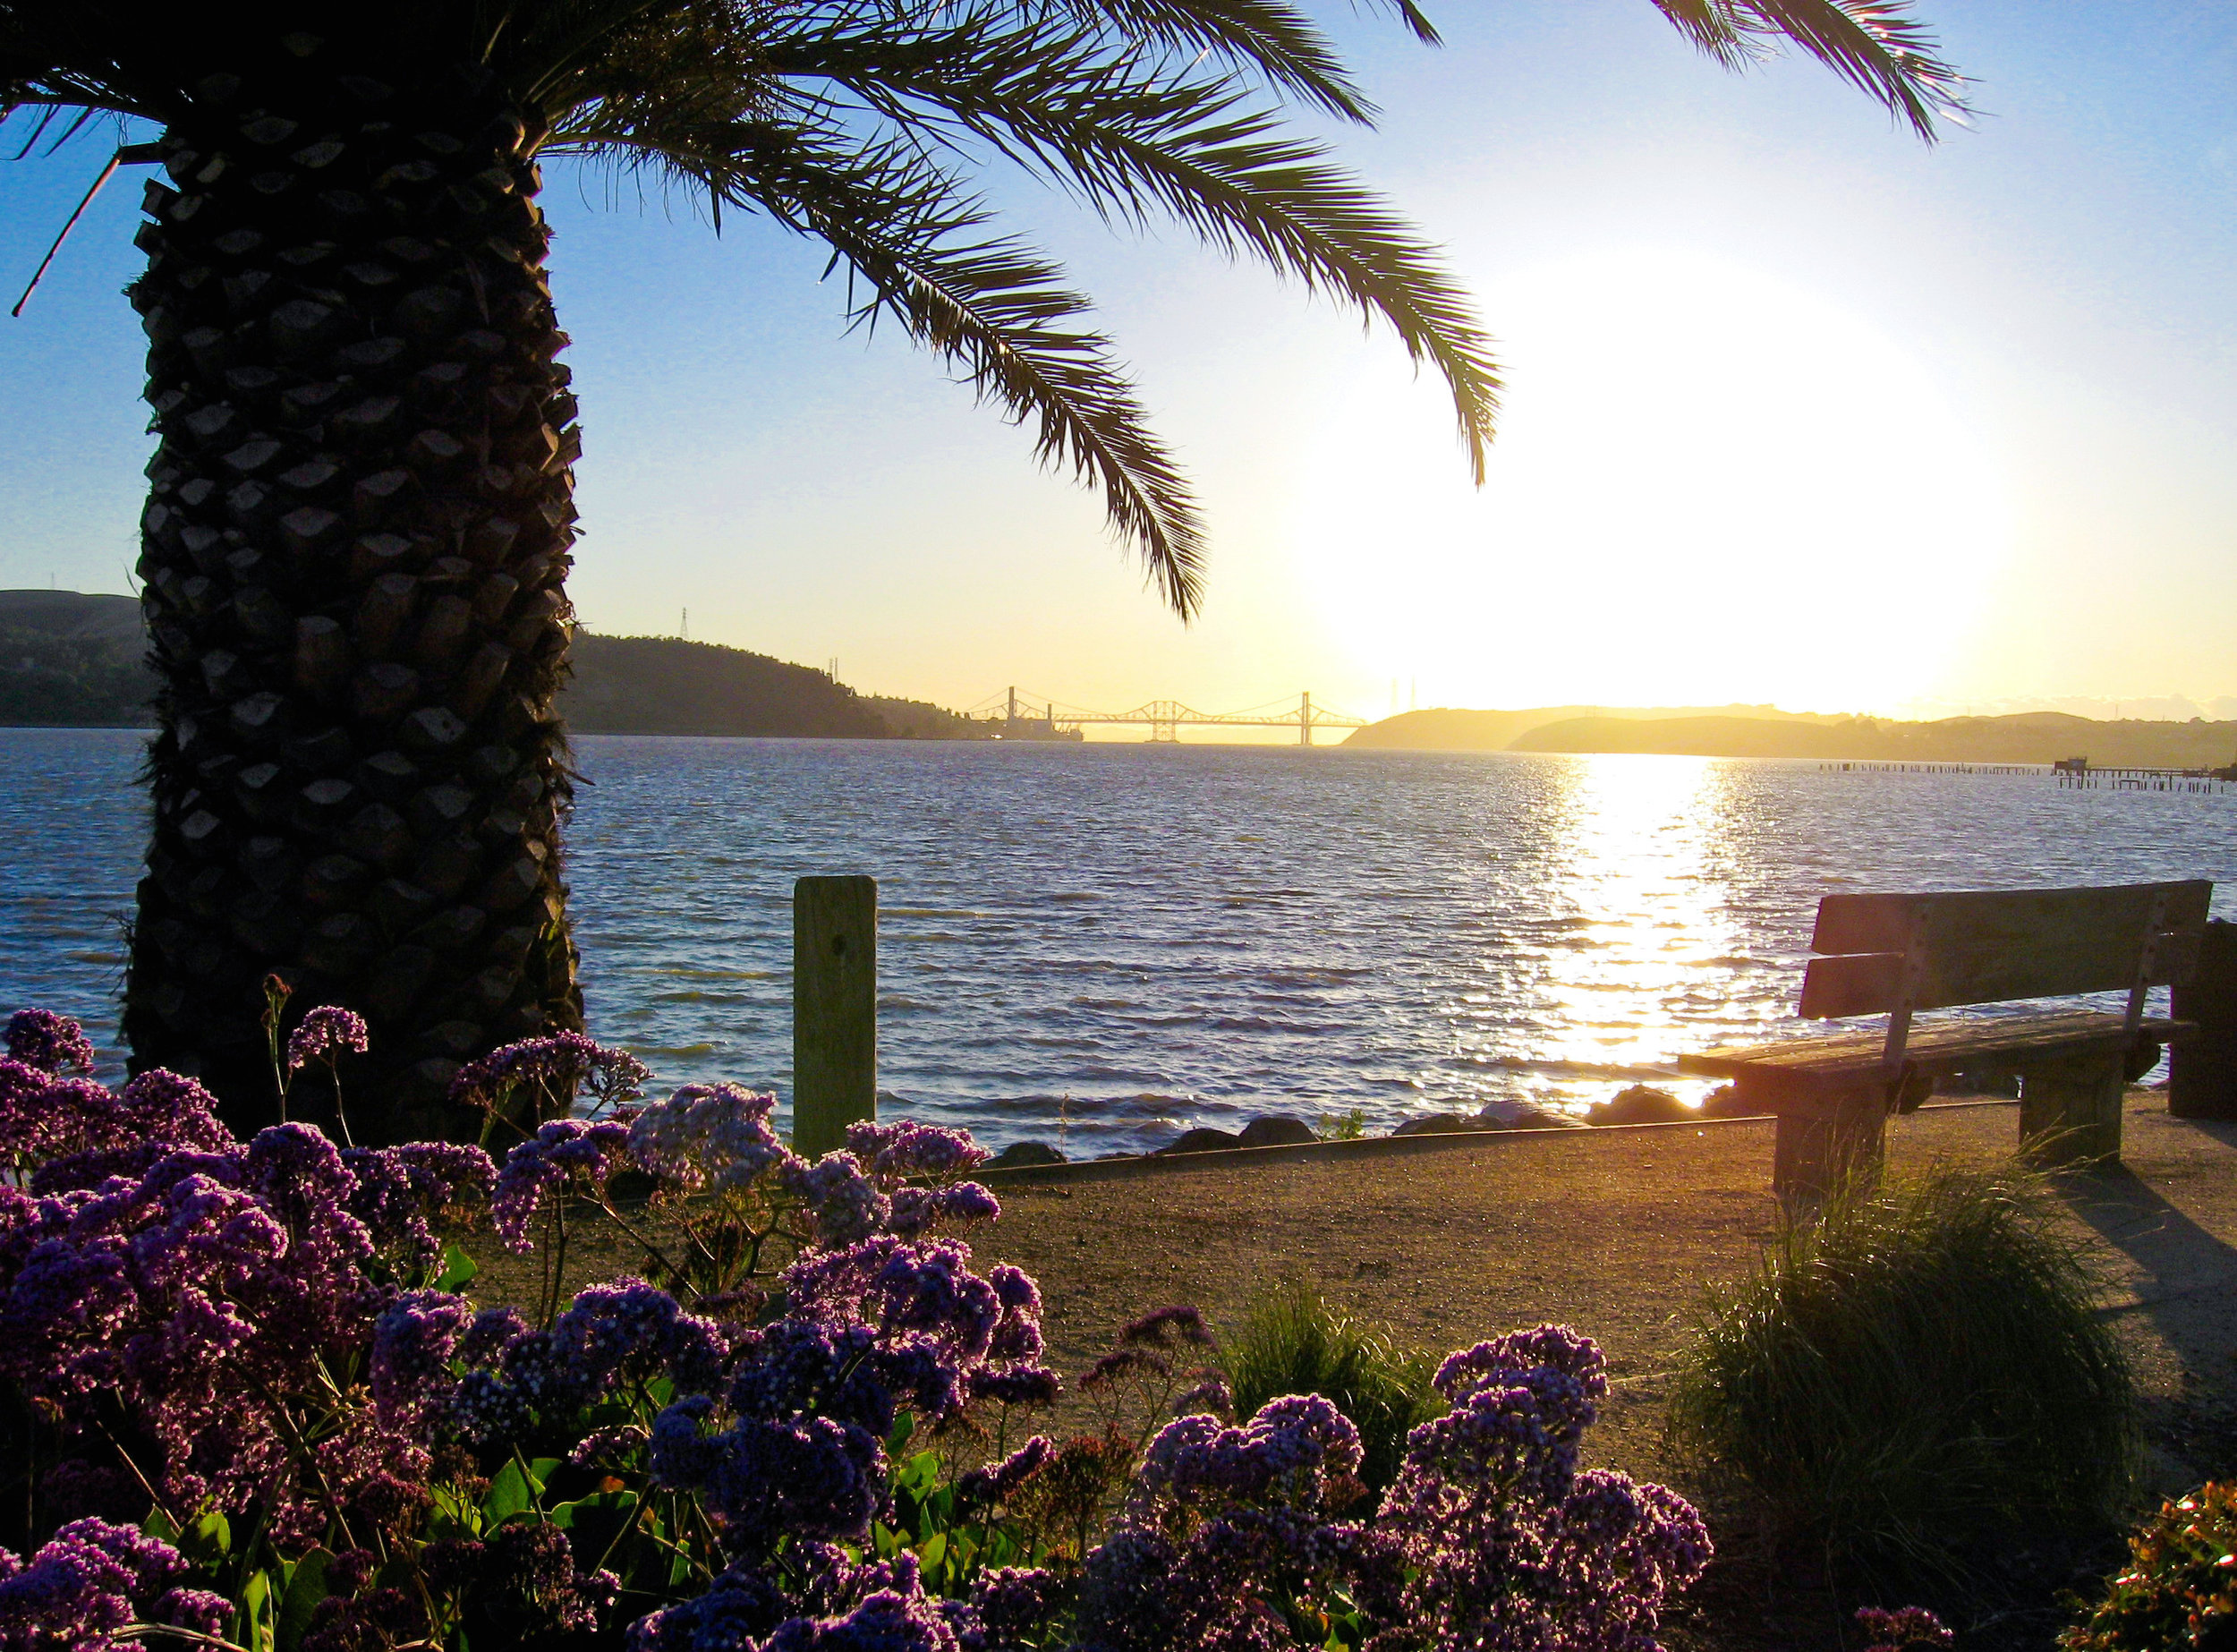 Scenic, Fun-Benicia Sunset on Bench-Bryan Maxwell (1).jpg